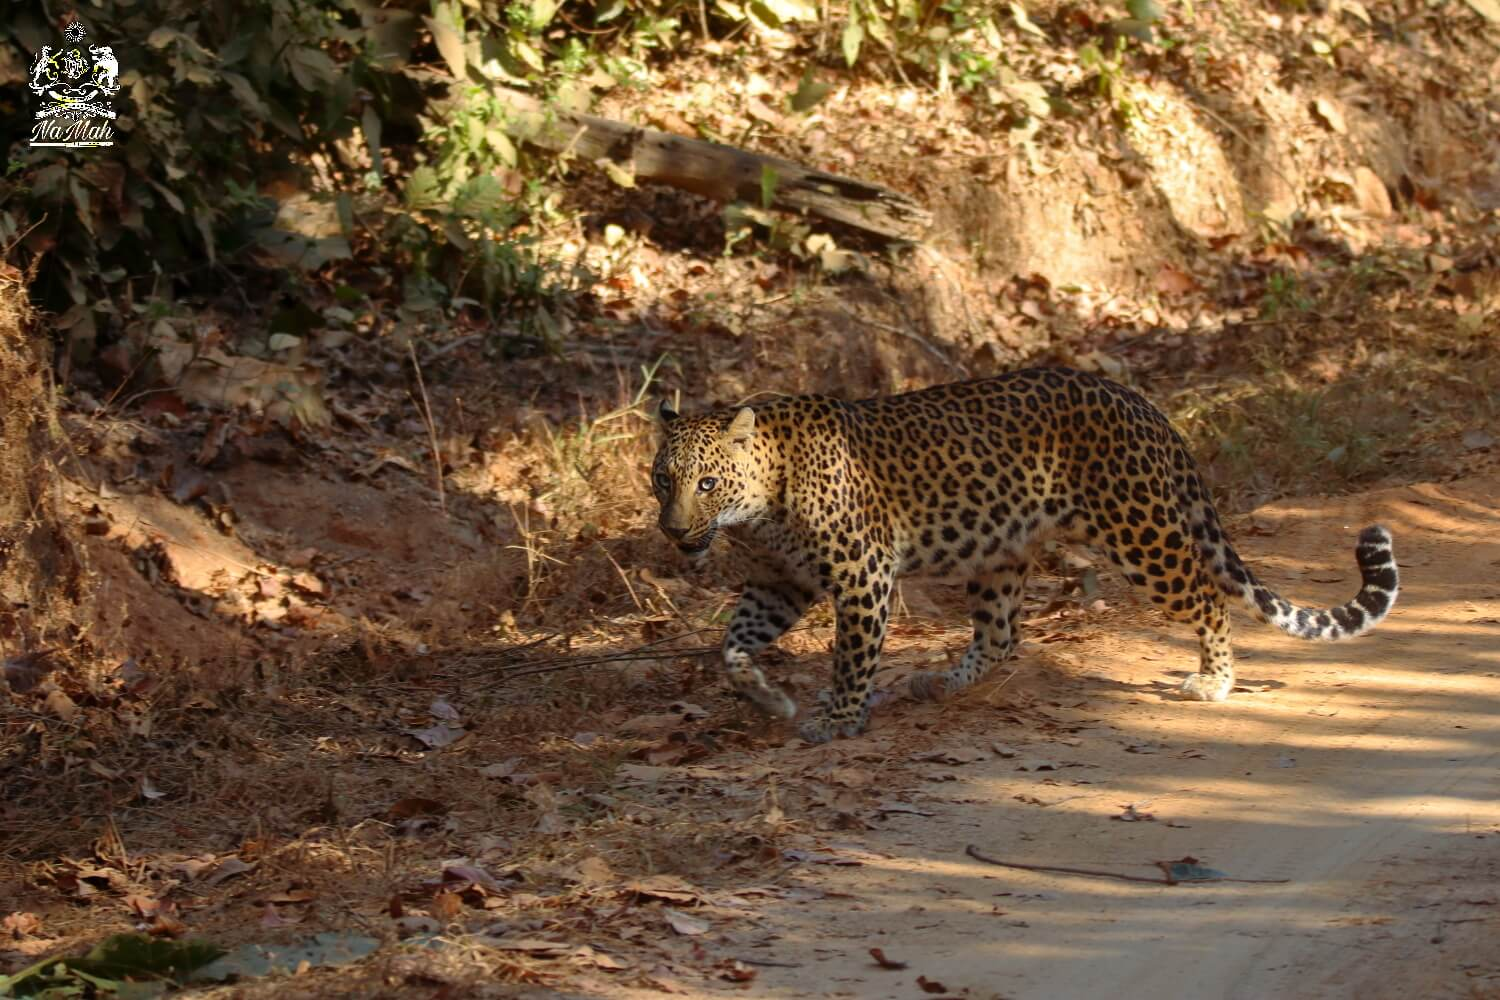 Leopard crossing road in national park